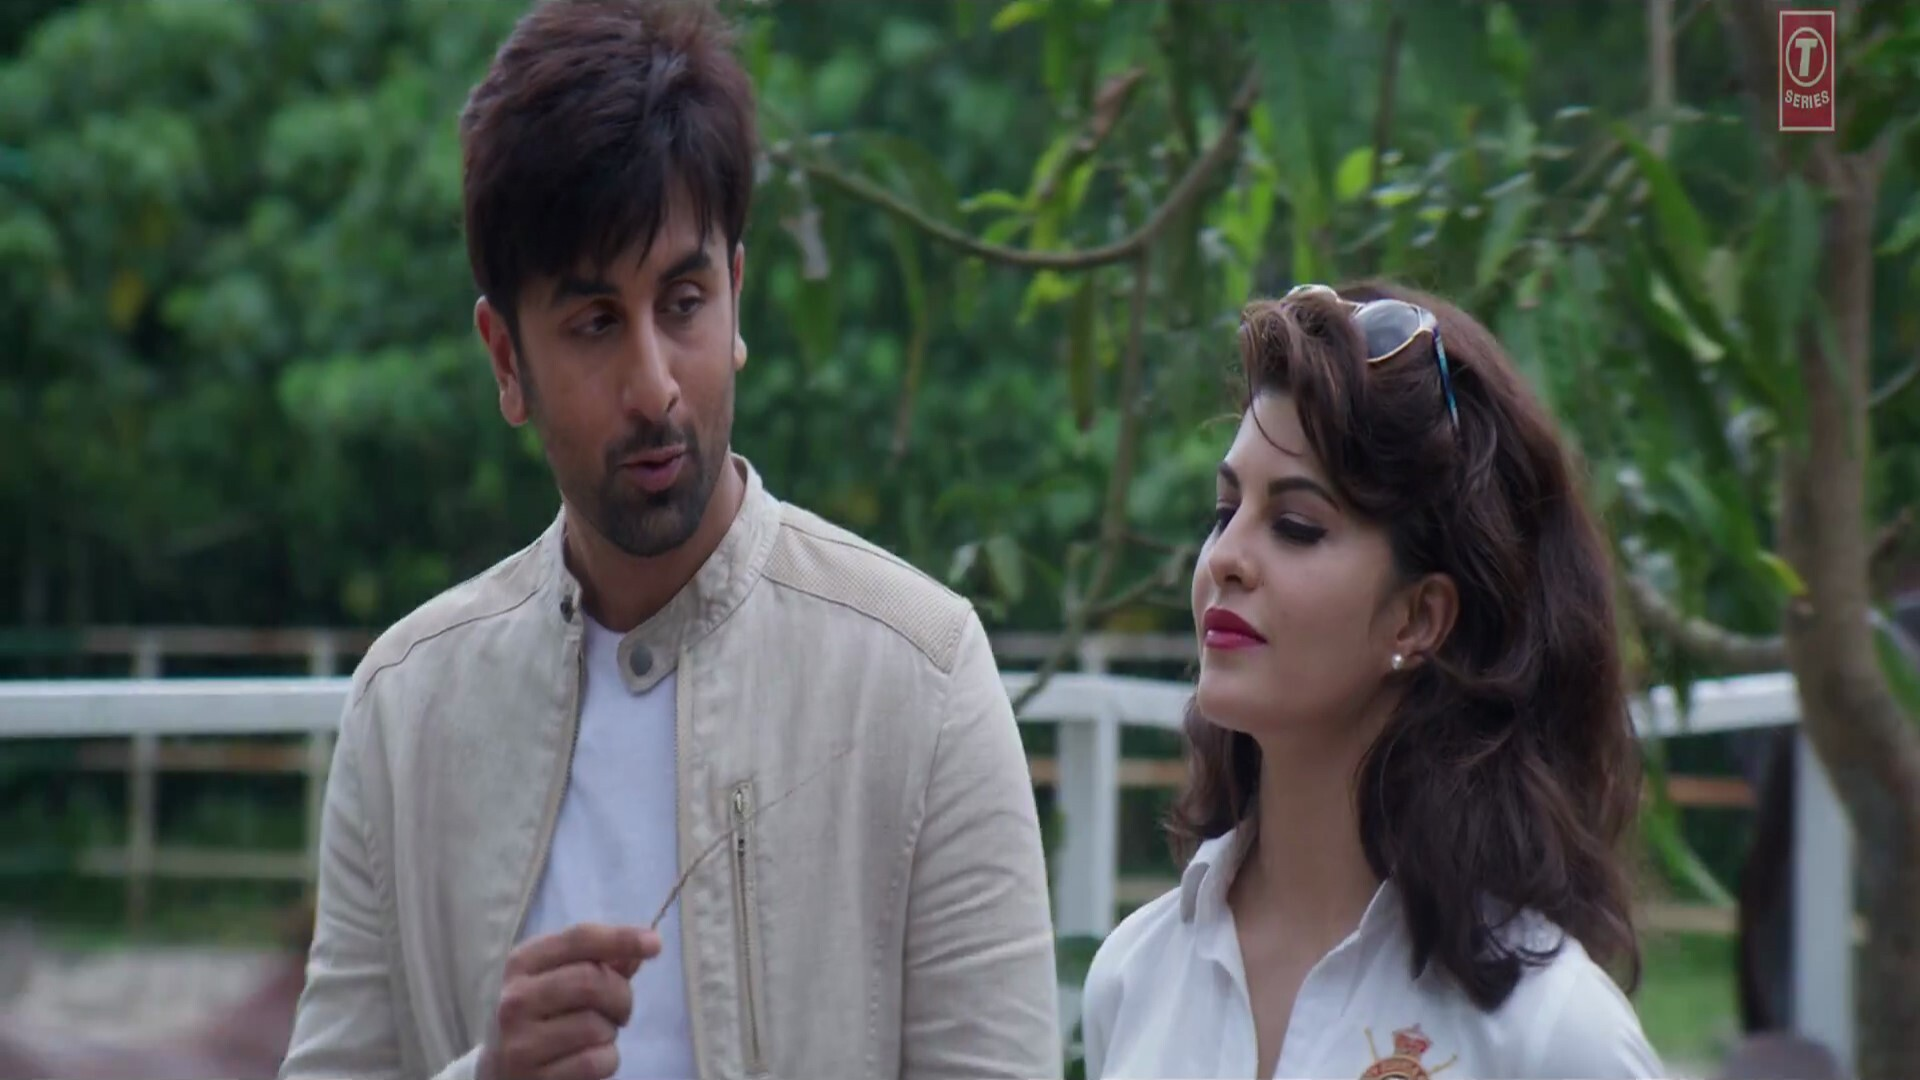 ranbir kapoor and jacqueline fernandez in new bollywood movie roy hd